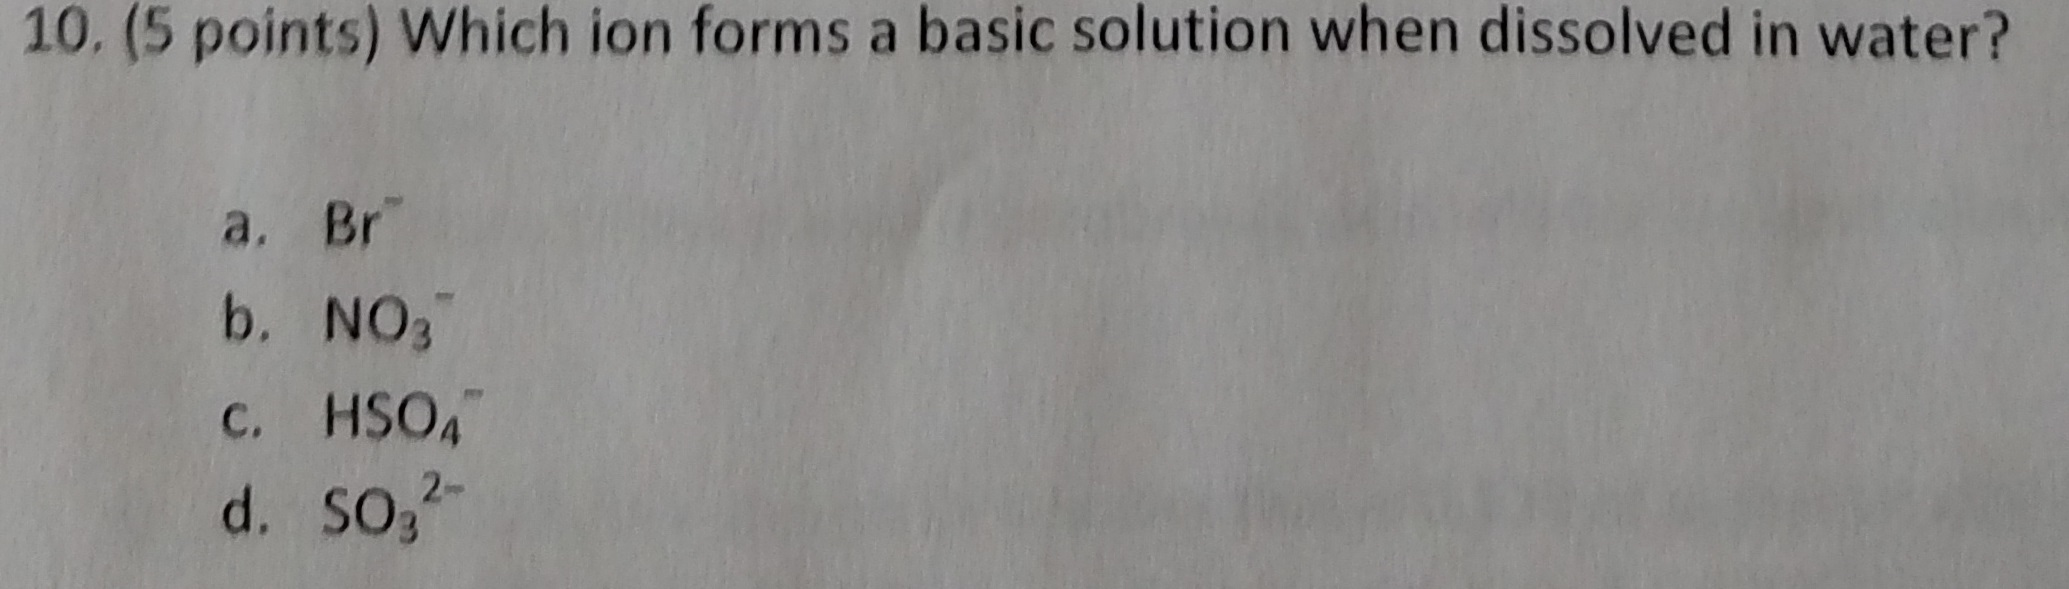 Which Ion Forms A Basic Solution When Dissolved In...   Chegg.com